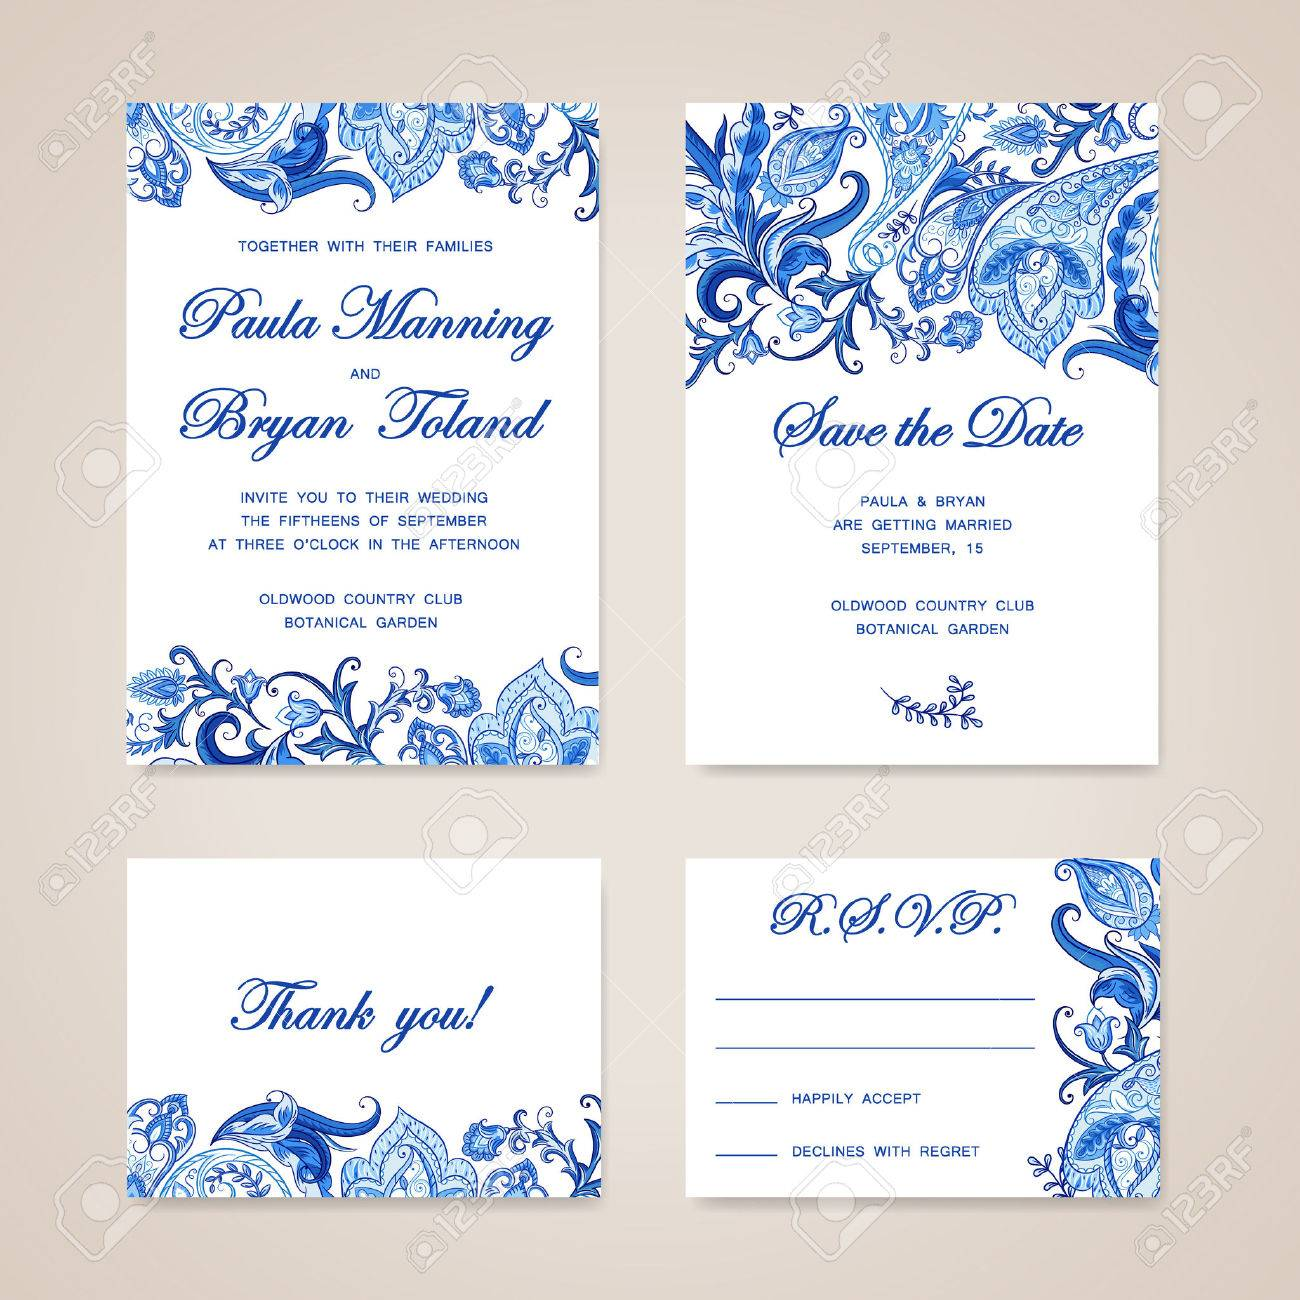 photo regarding Wedding Cards Printable named Preset of marriage ceremony invitation card with common ethnic flower..